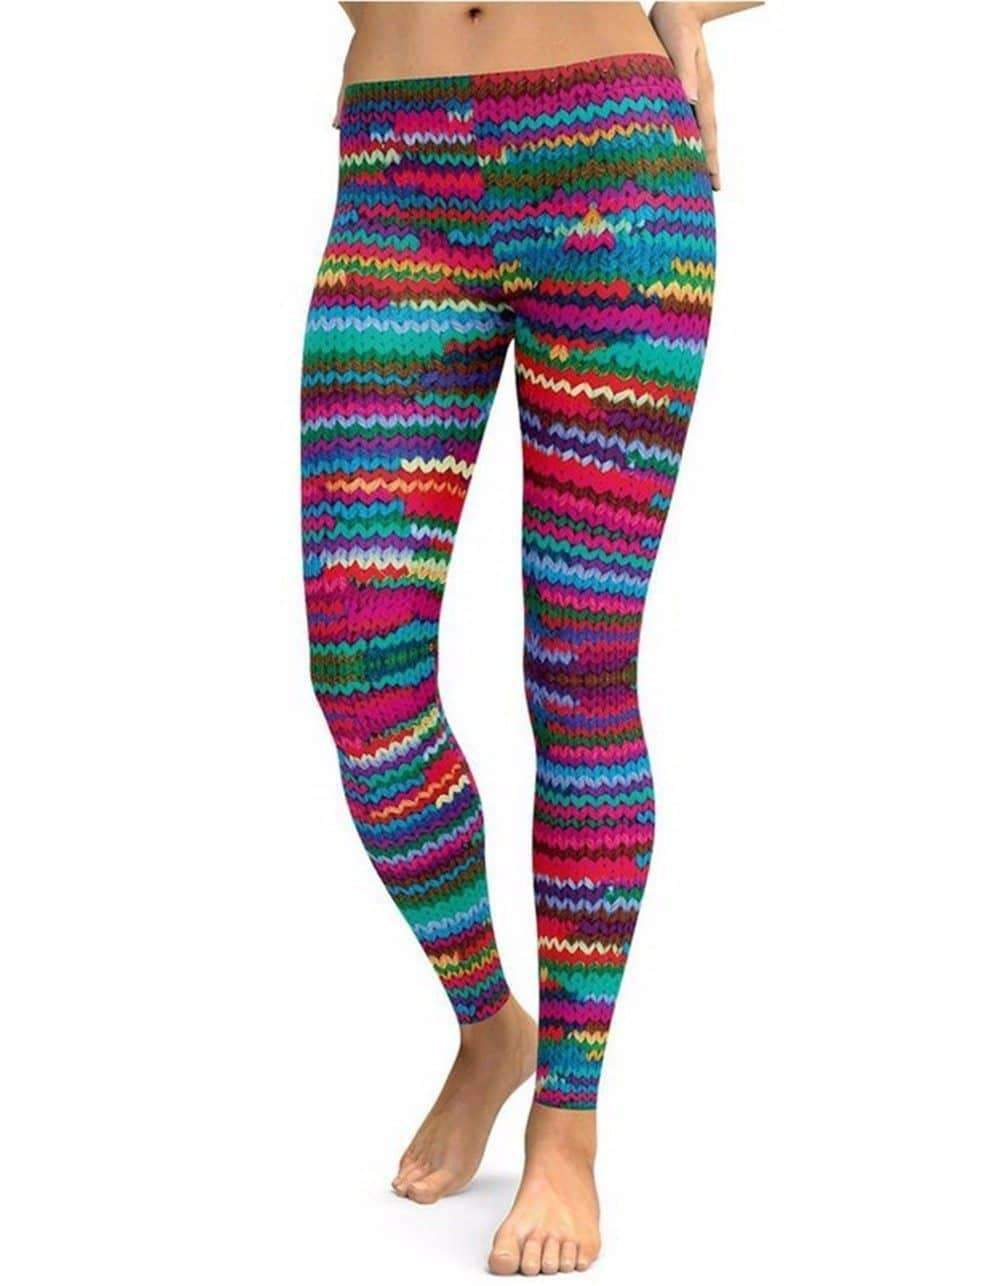 [leggycozy] Woolen Print High Waist Leggings